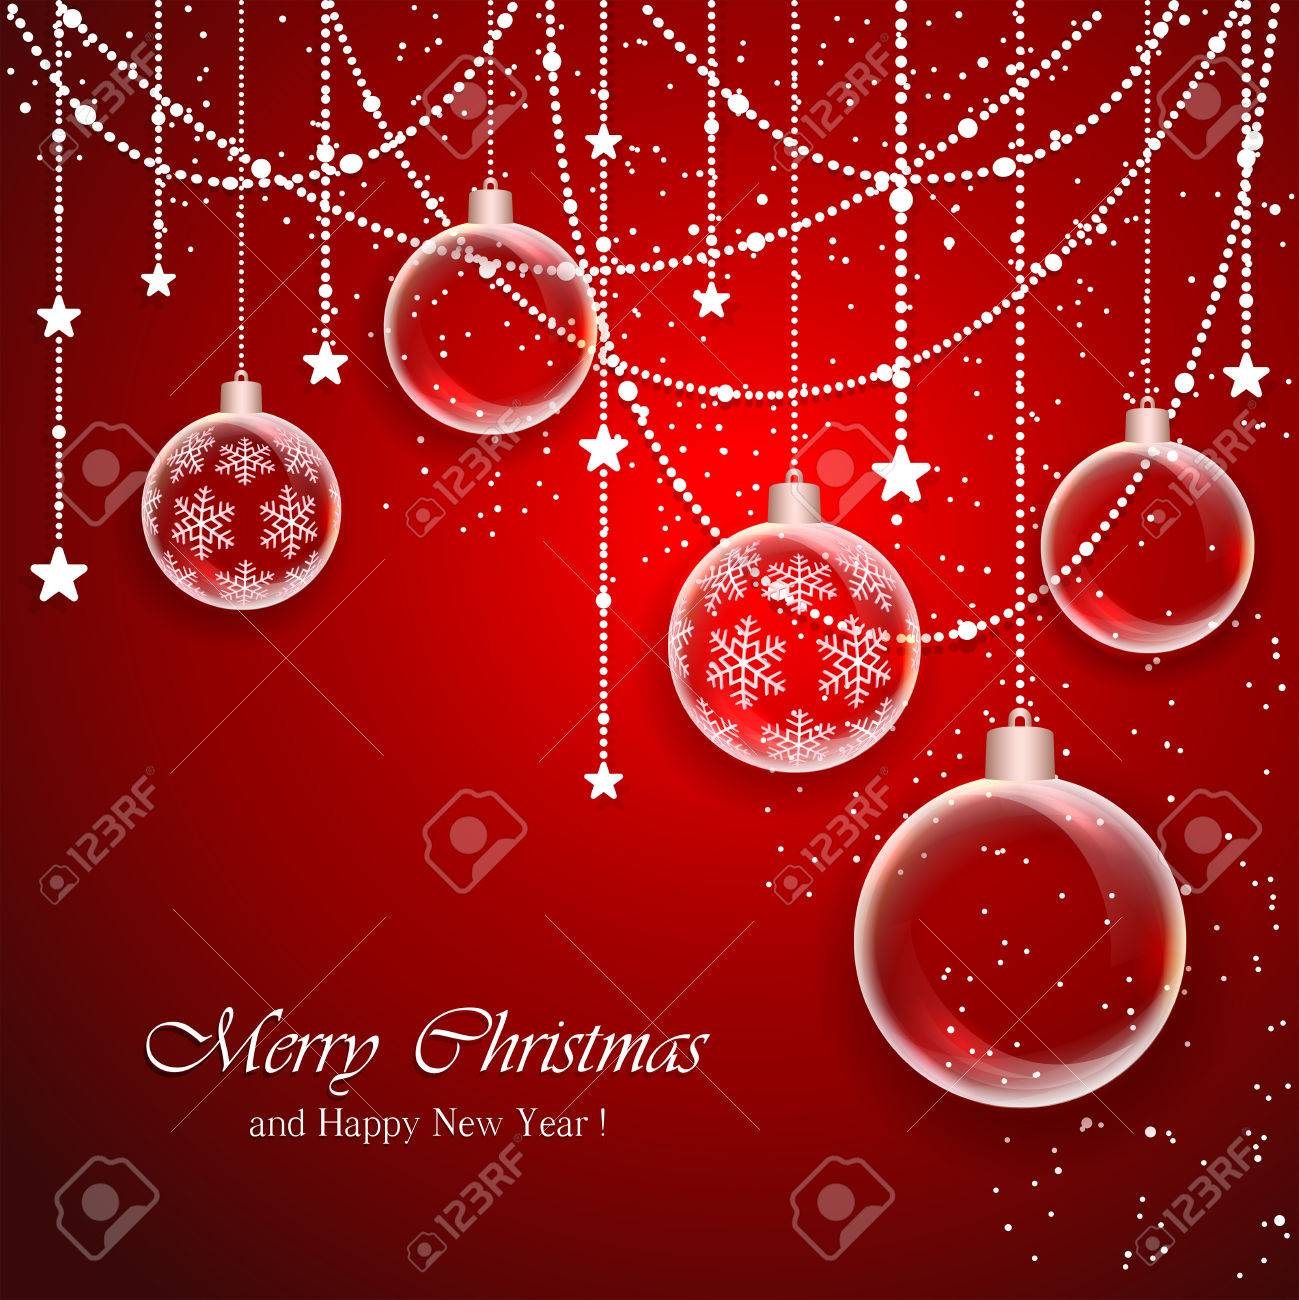 Red Christmas background with transparent balls and decorations with stars, illustration. - 46107099